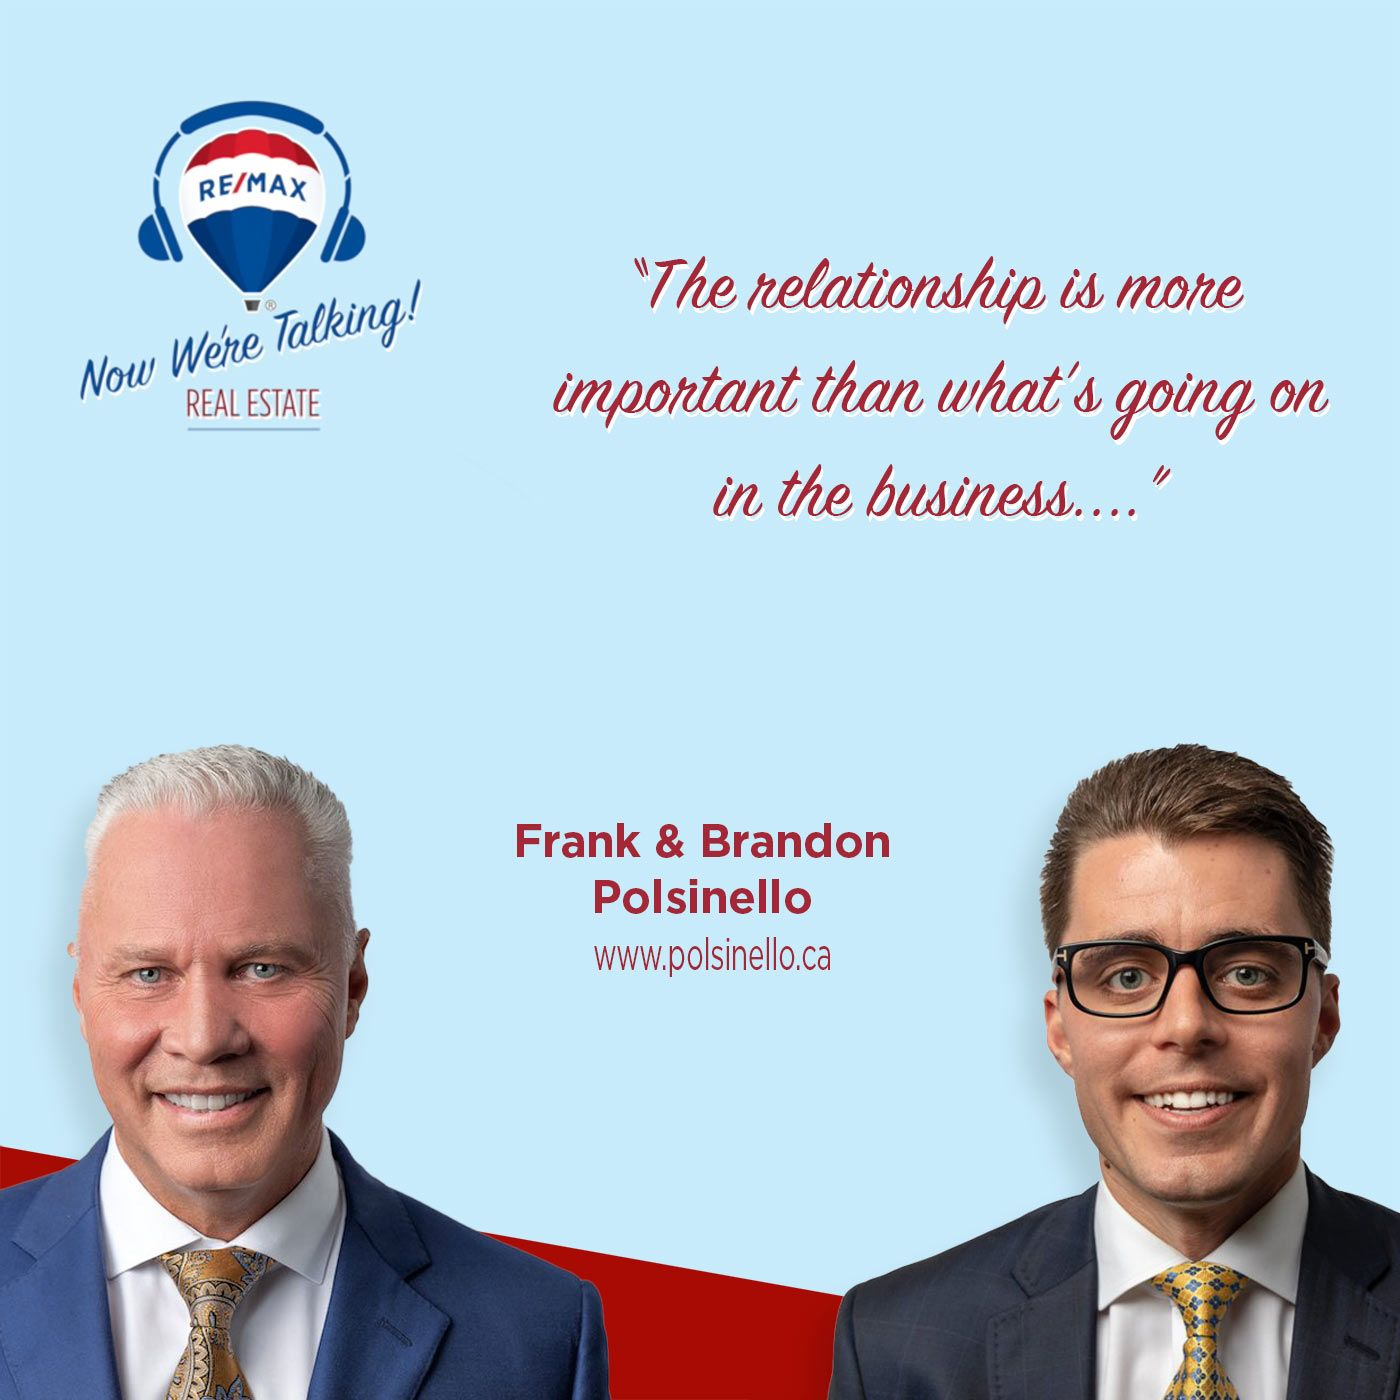 Family Ties & Tips to Building a Business with Frank and Brandon Polsinello